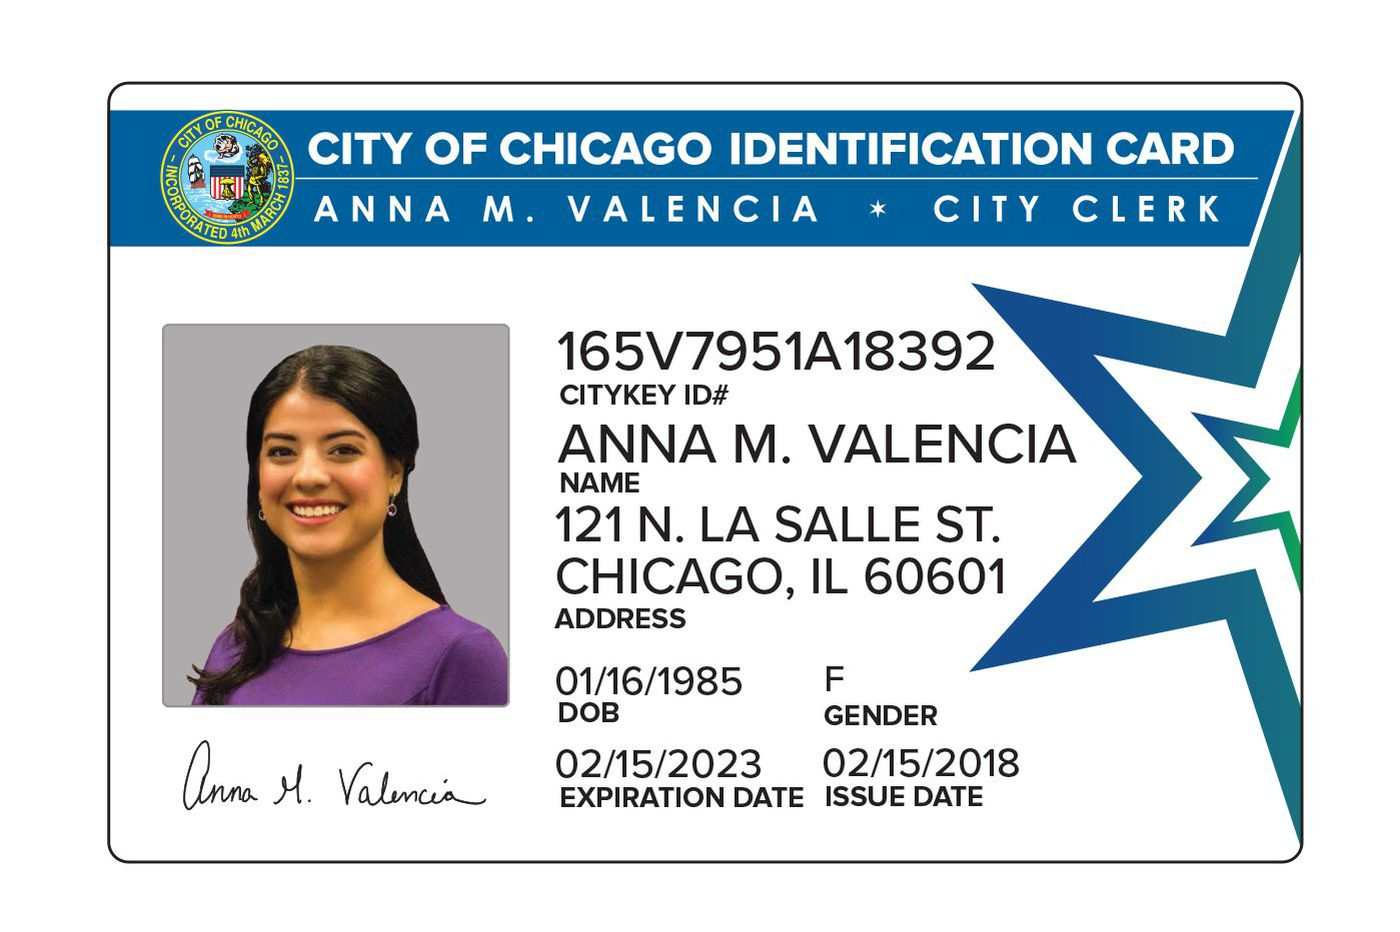 City Council passes bill that clears the way for municipal IDs